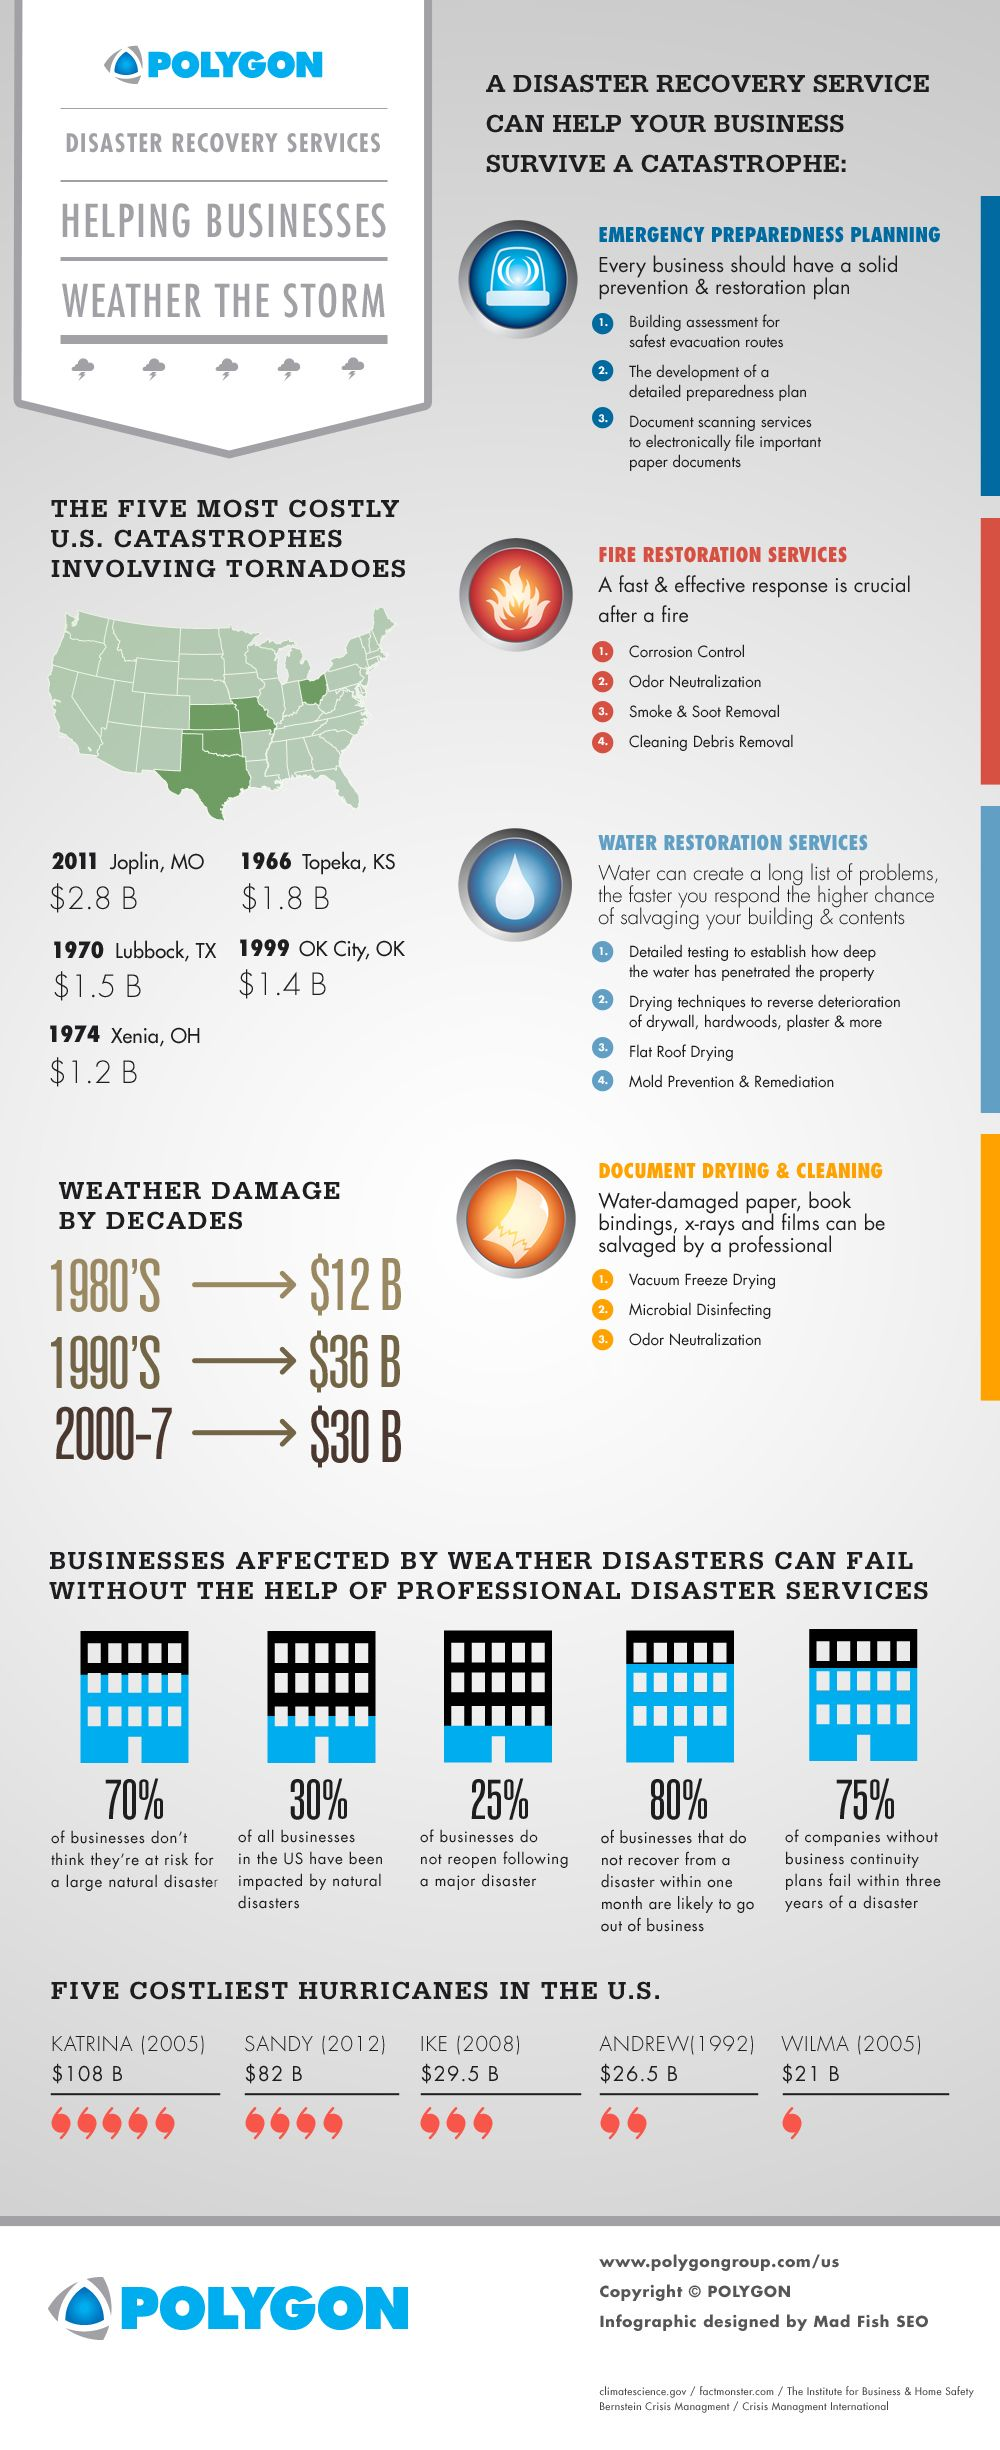 Disaster Recovery Services Help Businesses Weather The Storm Emergency Preparedness Plan Disasters